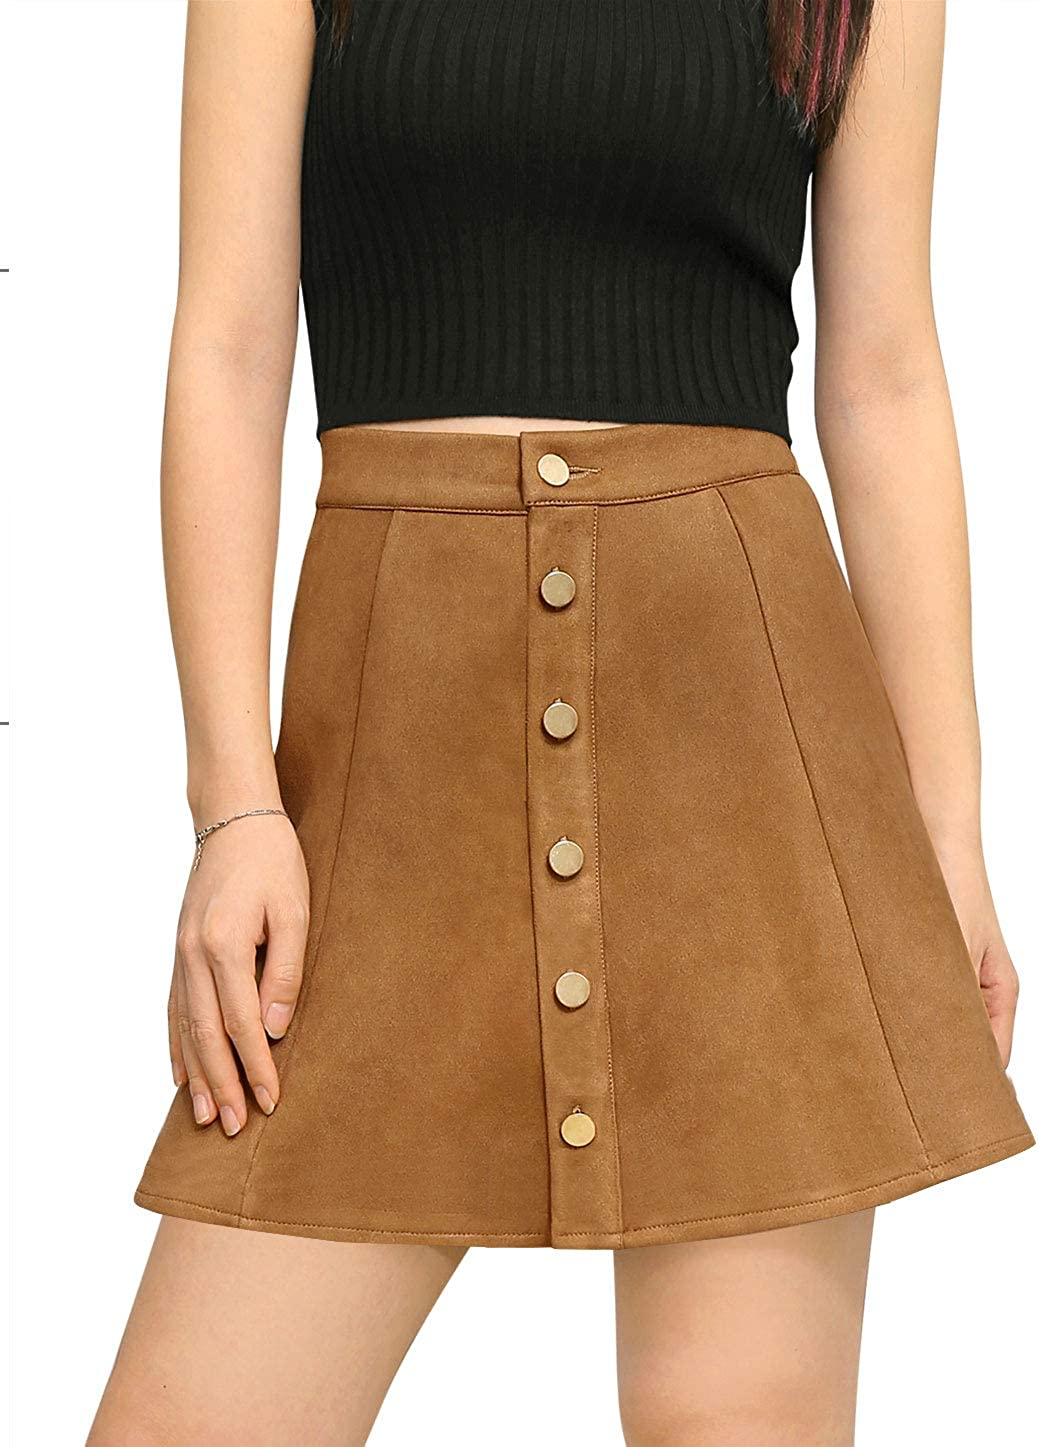 Allegra K Women's Faux Suede Single Breasted Front A-Line High Waist Button Closure Mini Short Skirt